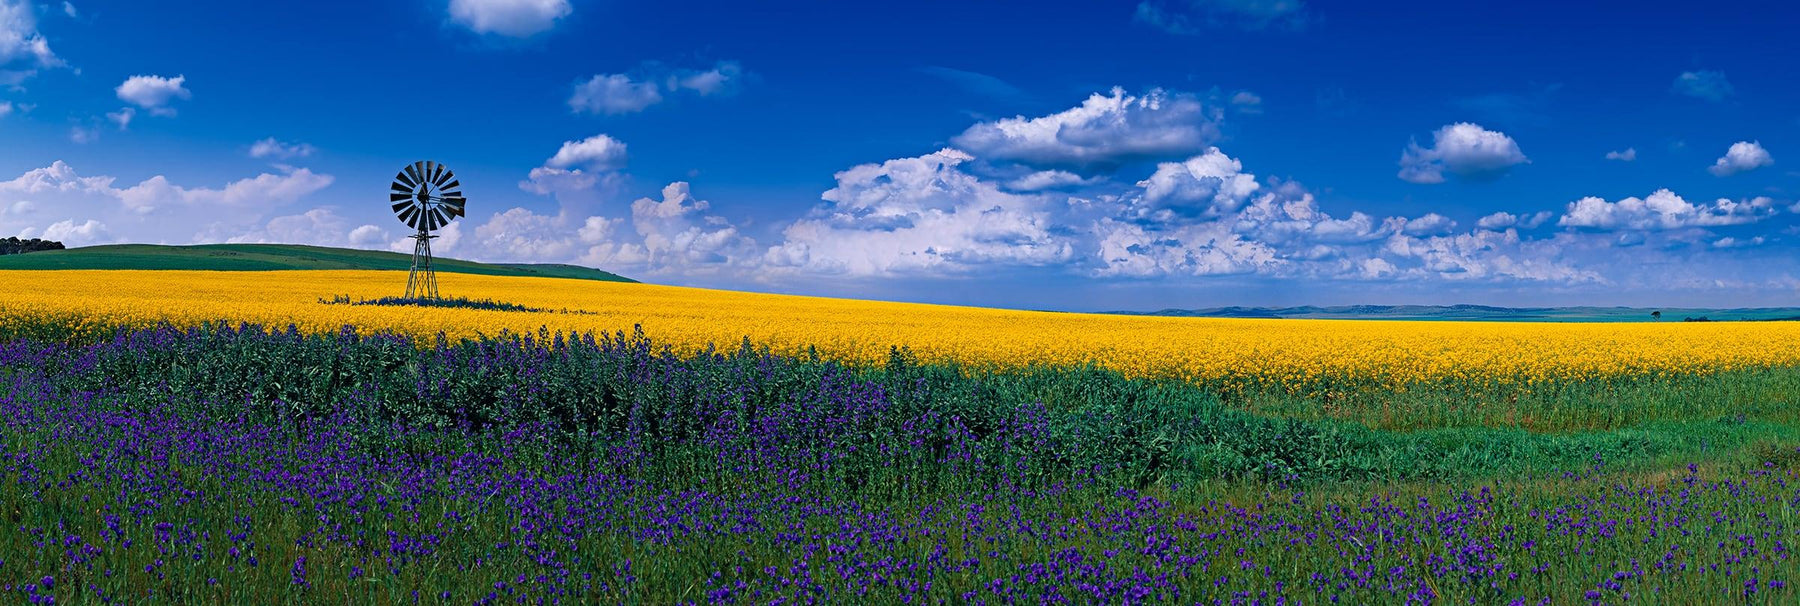 Windmill sitting in the middle of a yellow and purple flower field in Burra Australia